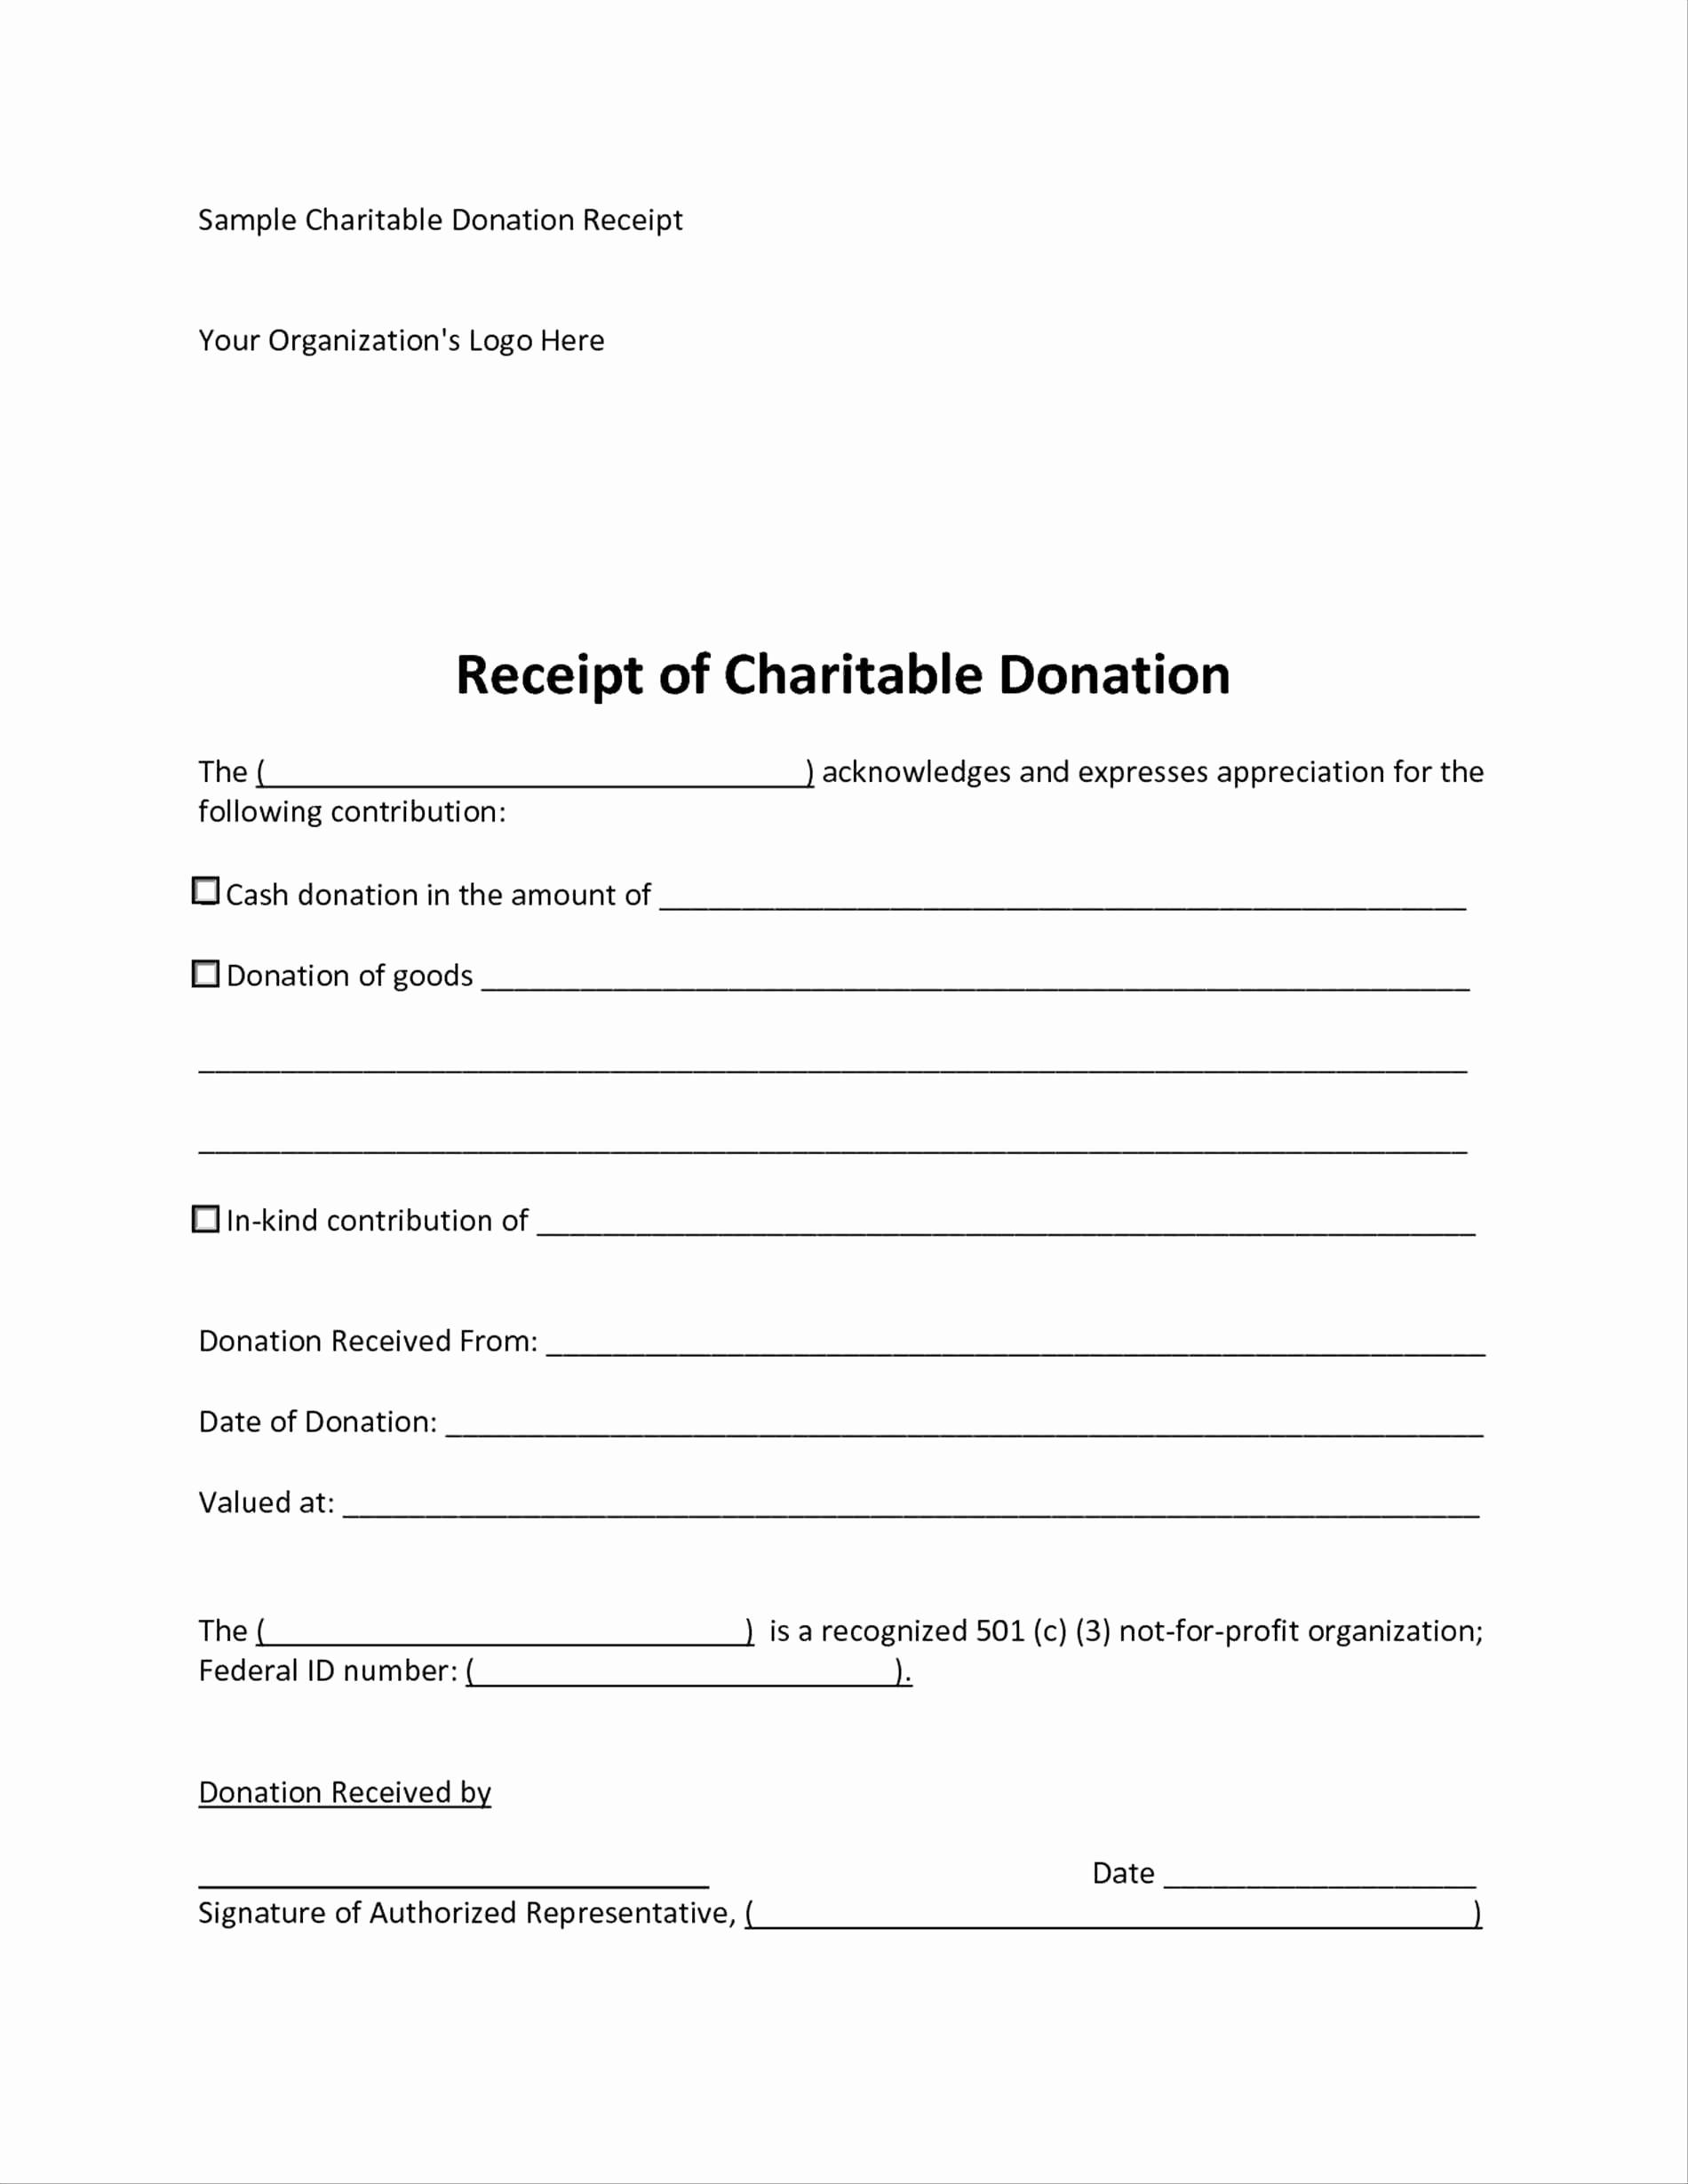 Charitable Donation Receipt Letter Template - 15 Lovely Tax Donation Letter Template Resume Templates Resume